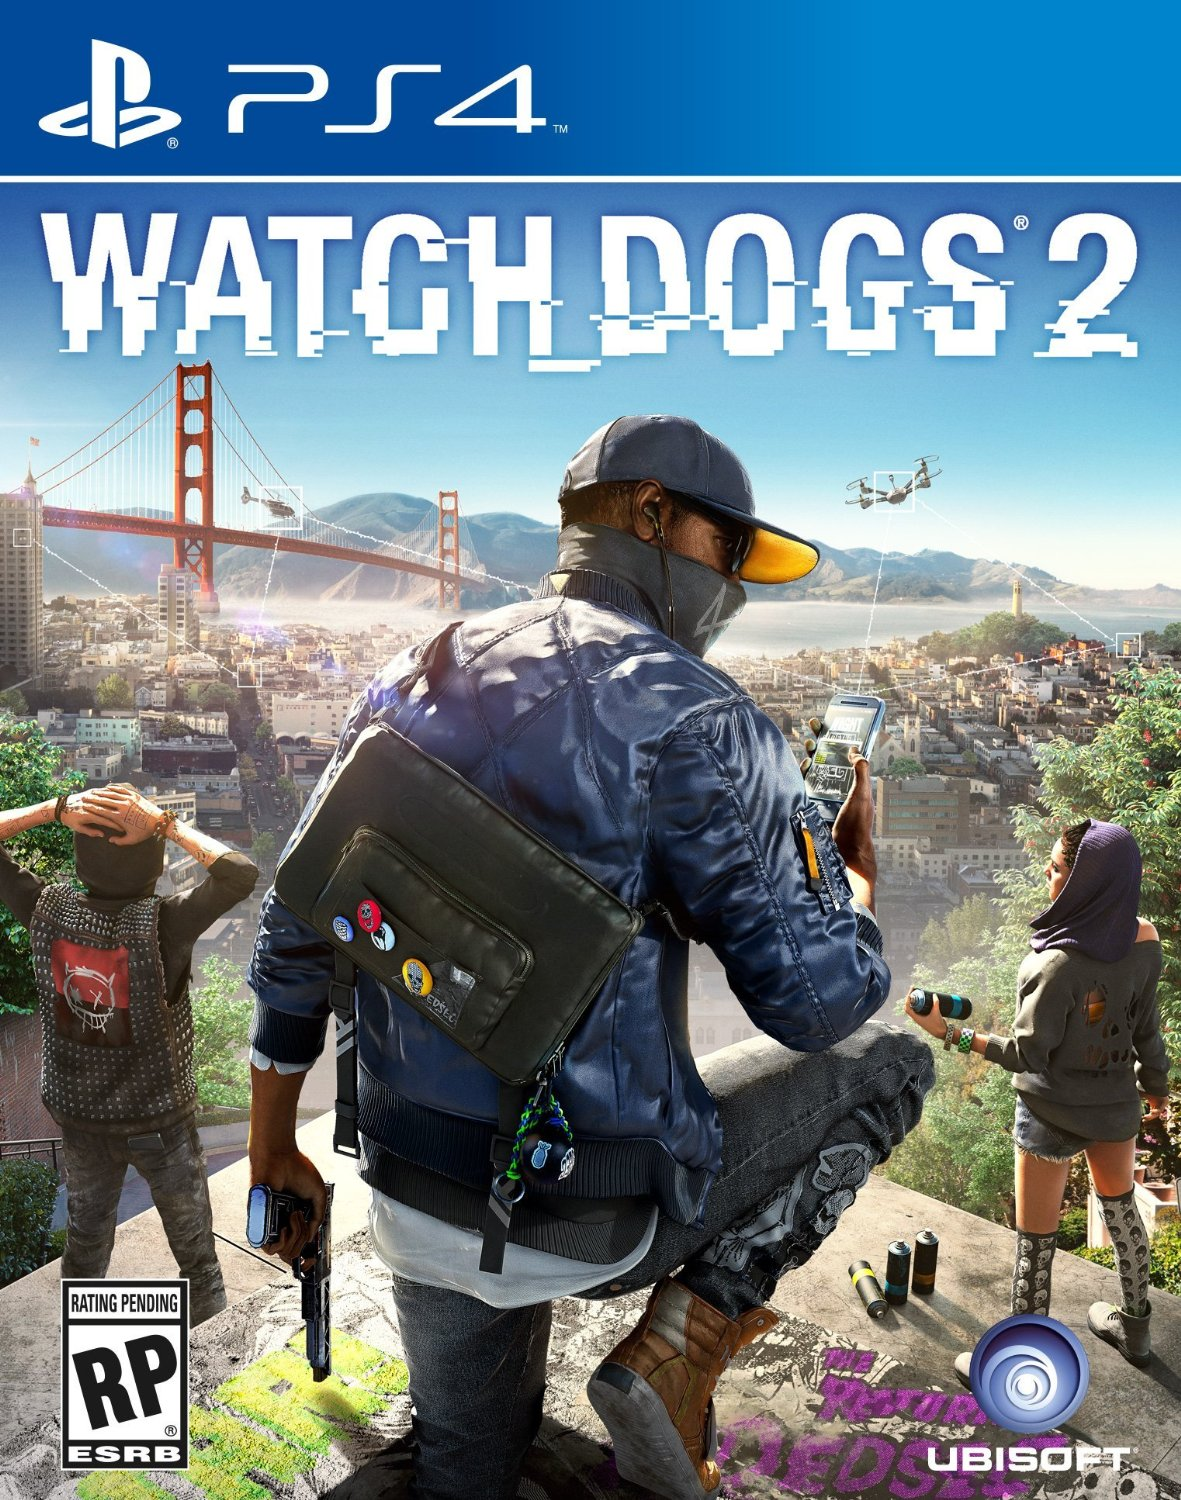 watch-dogs-2-details-boxart-1